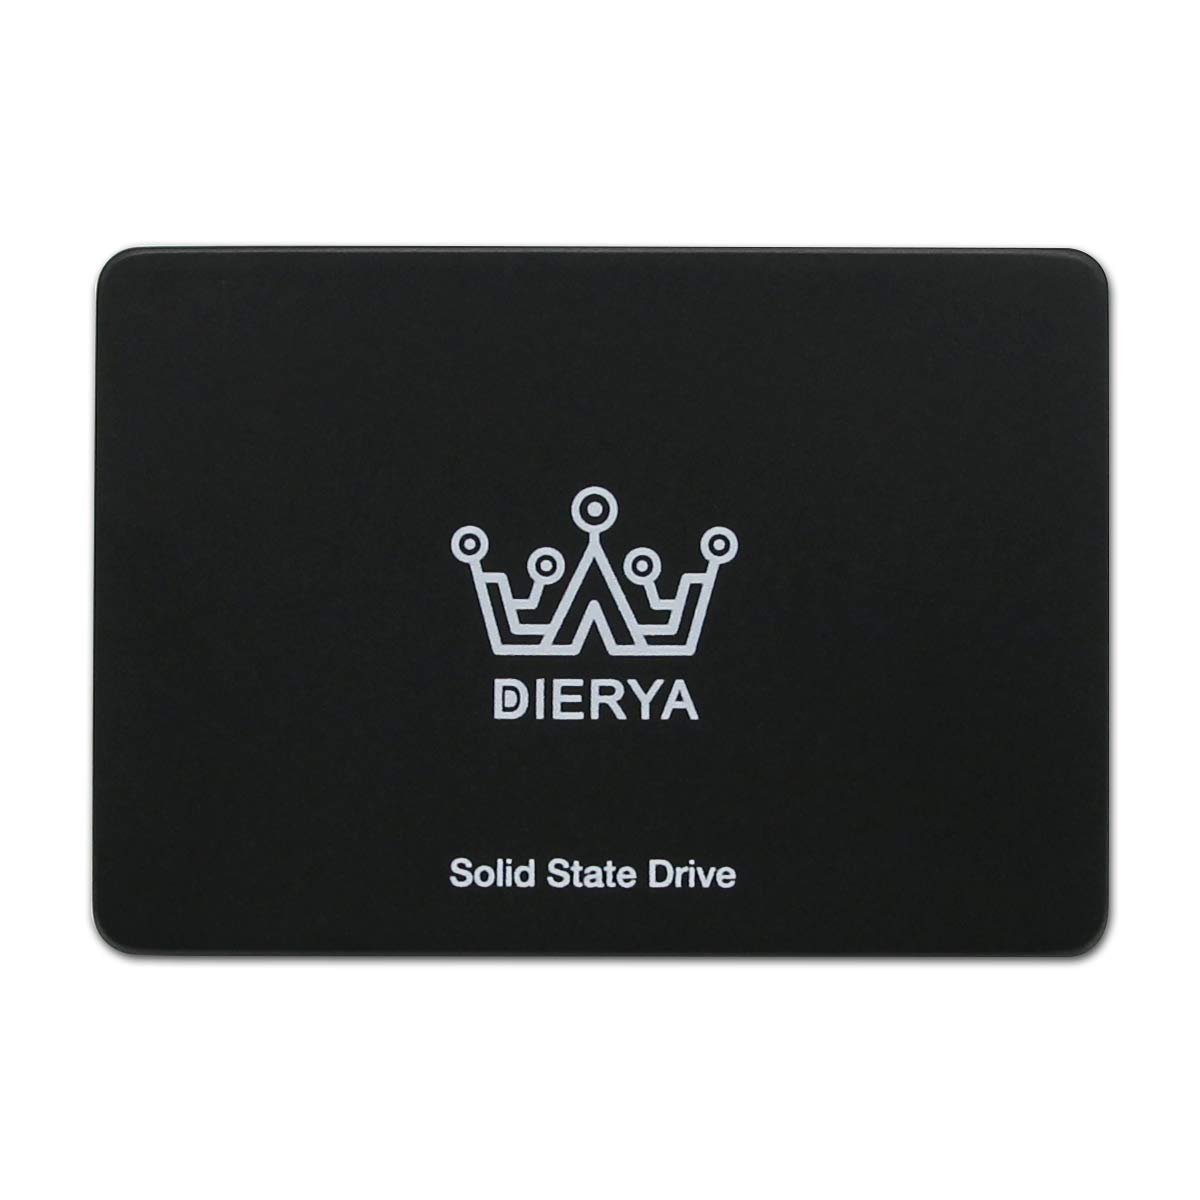 DIERYA K1 120GB Professional SSD 3D NAND SATA III 6Gbps 2.5'' Internal Solid State Drives for PC Laptop